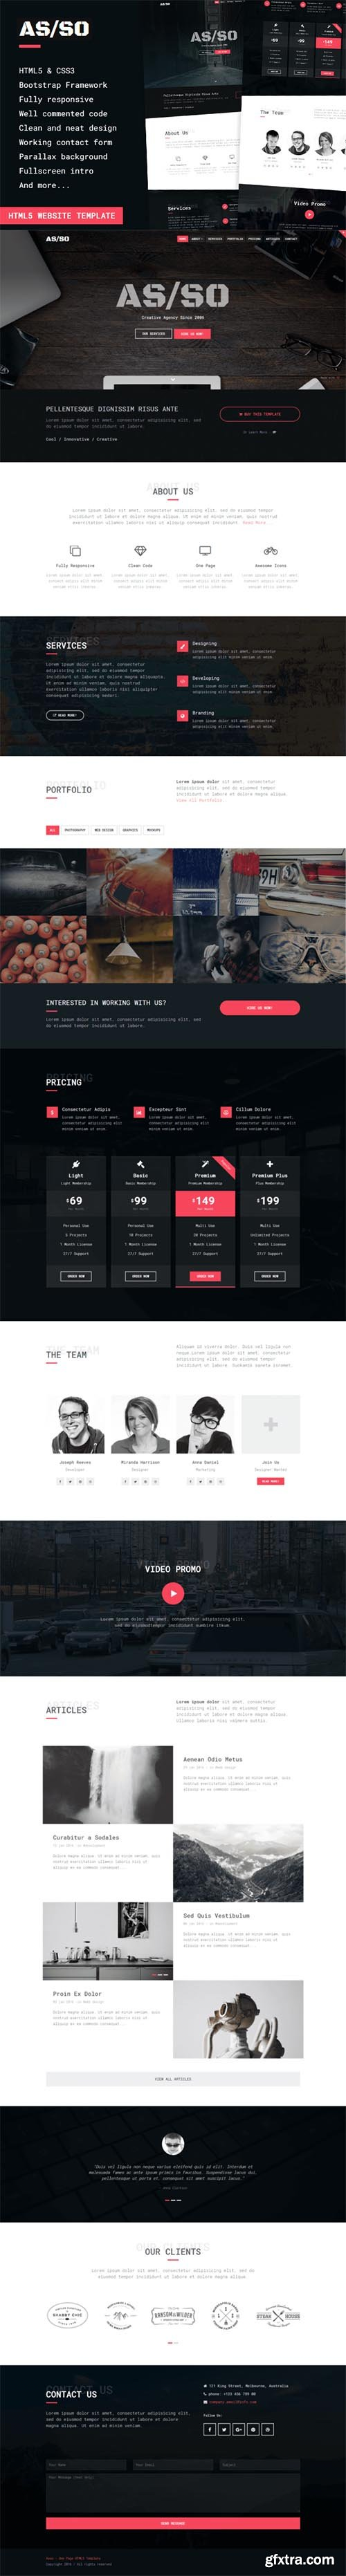 Asso - One Page HTML5 Template - CM 602947